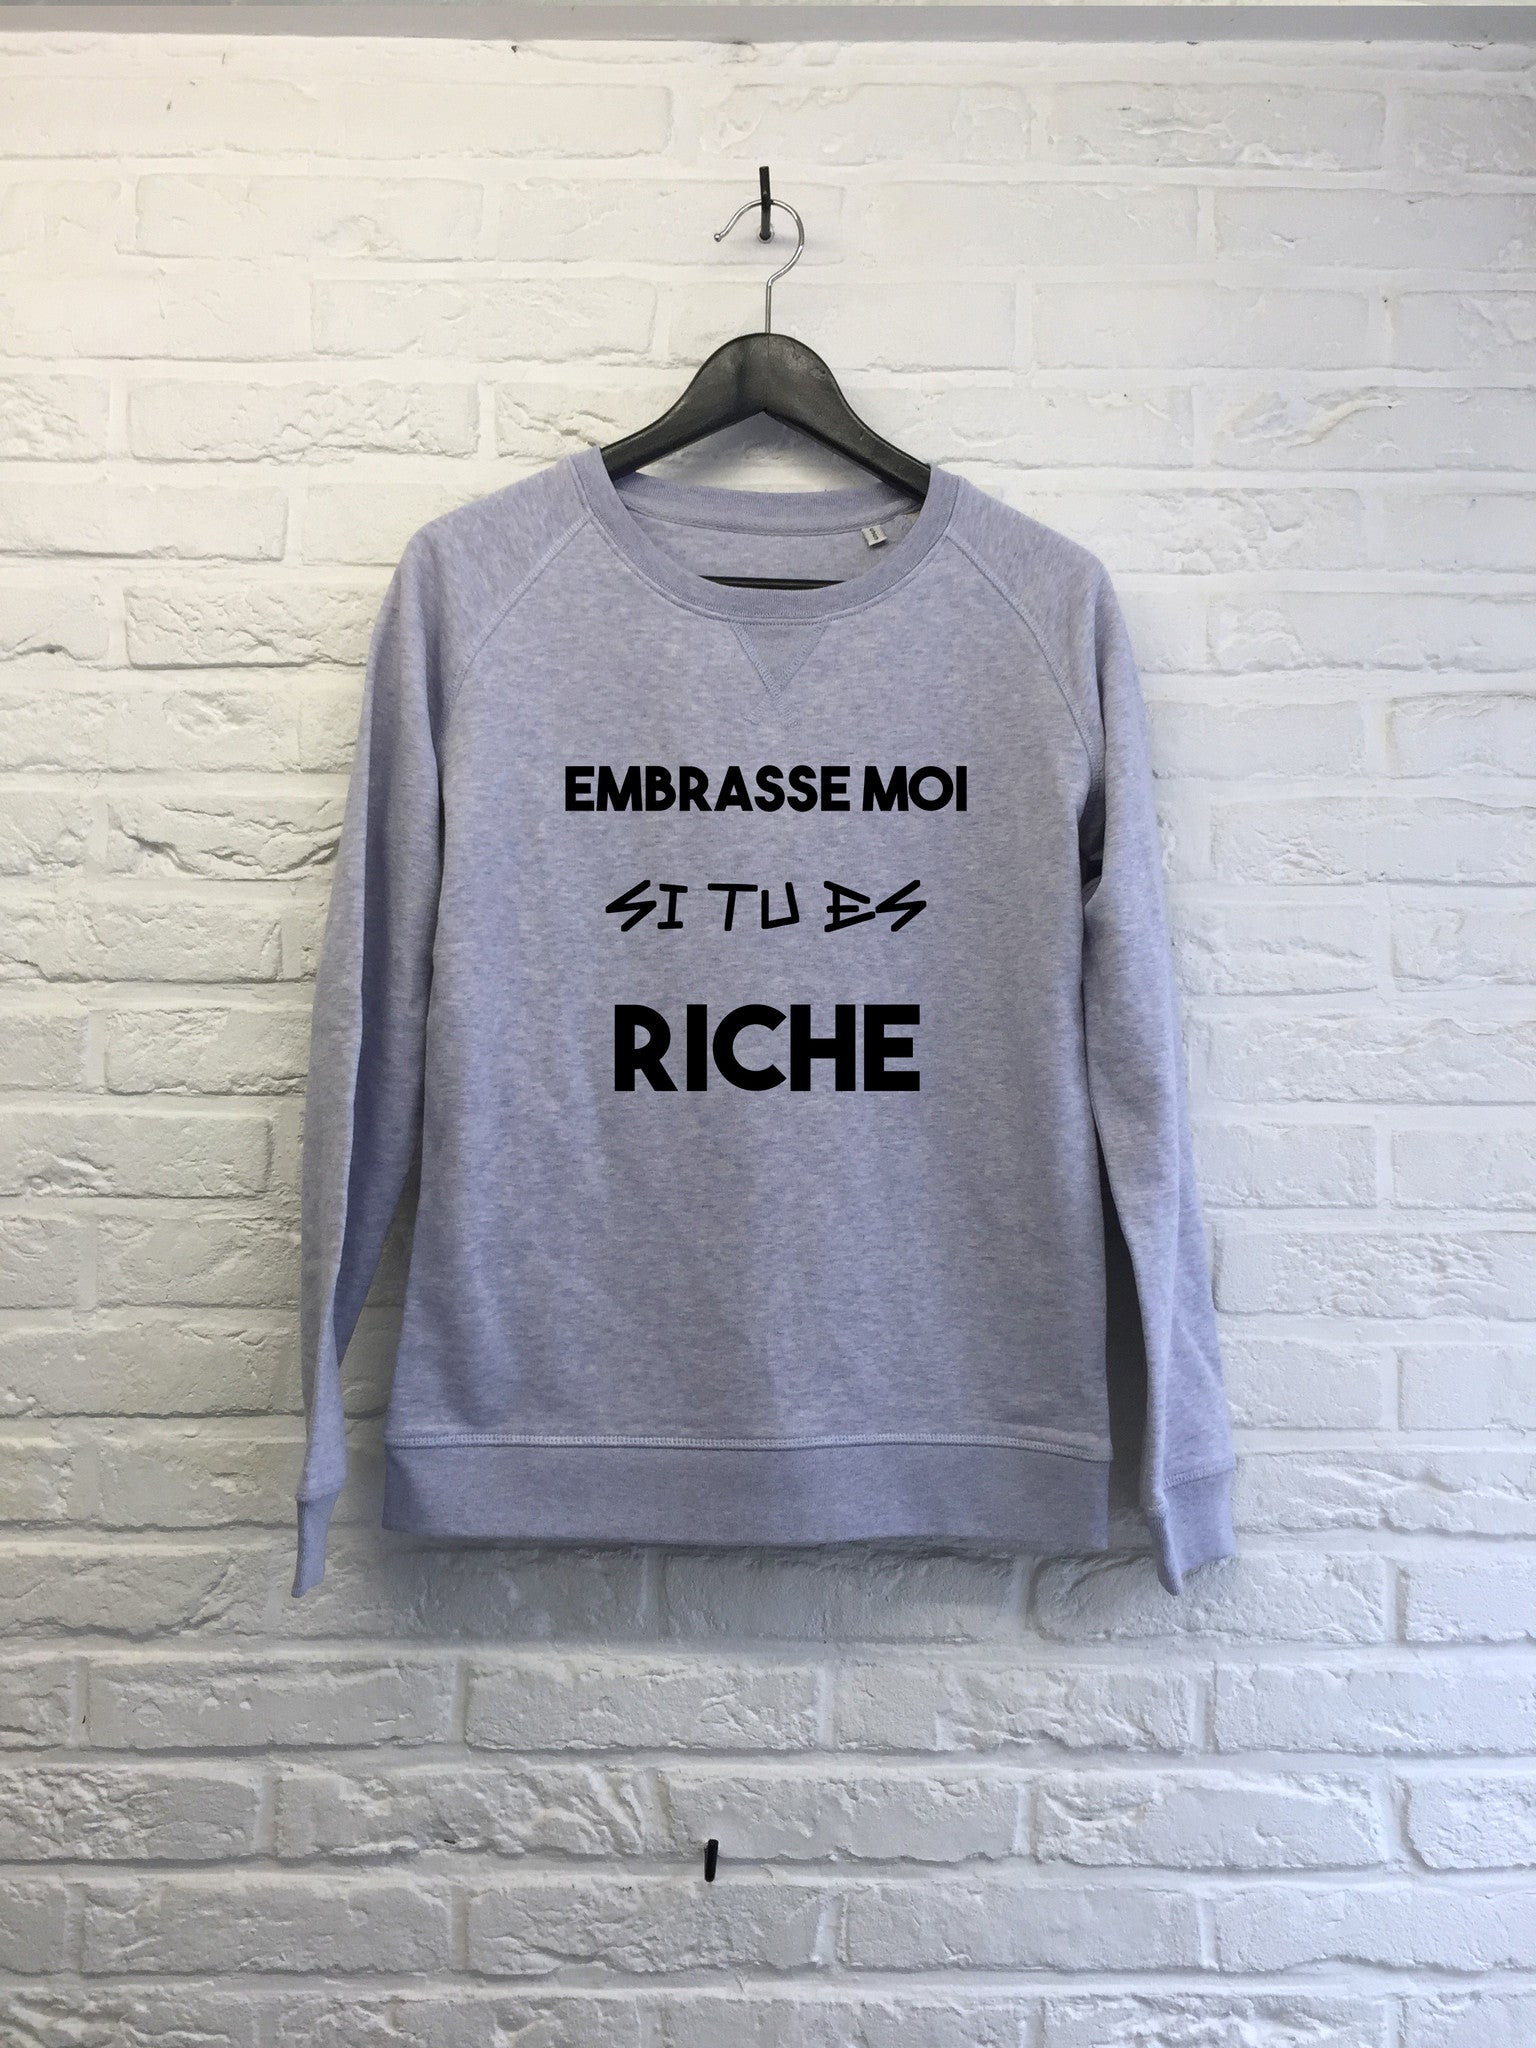 Embrasse moi si tu es riche - Sweat - Femme-Sweat shirts-Atelier Amelot